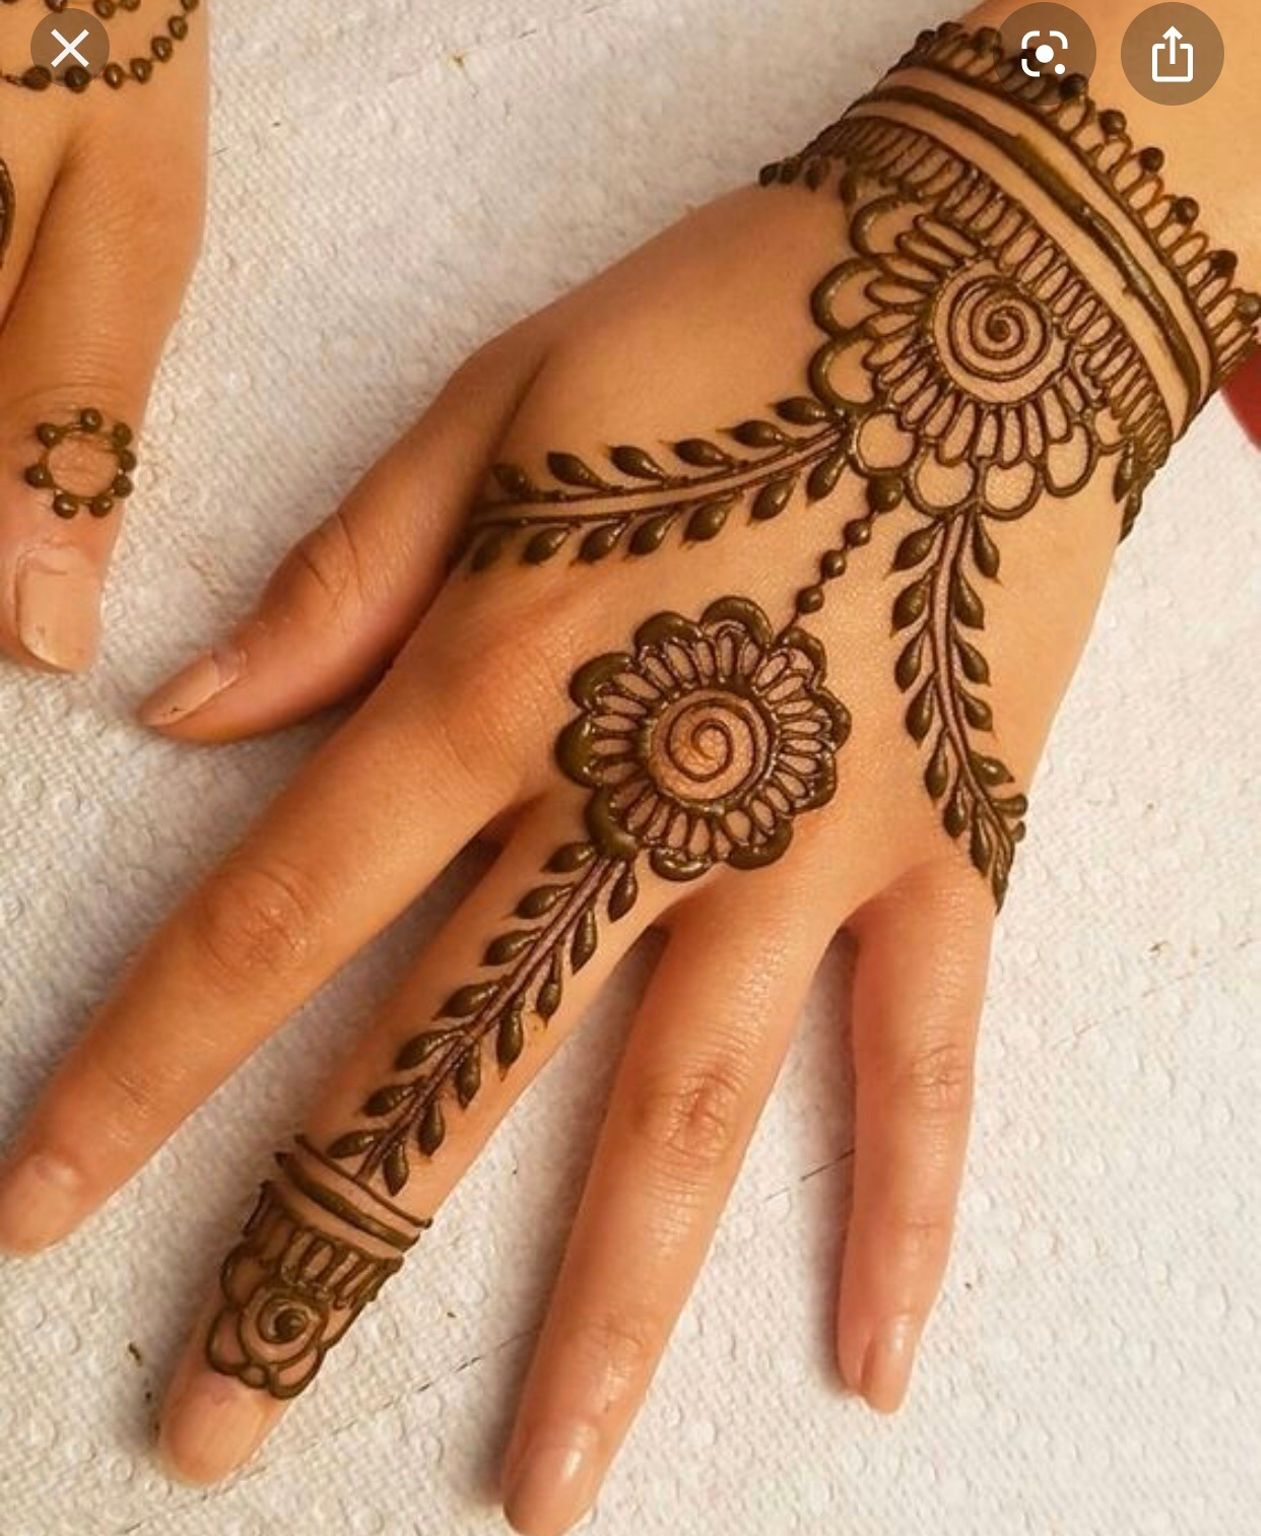 मेहंदी डिजाइन | Simple Mehndi Designs for Girls & Ladies